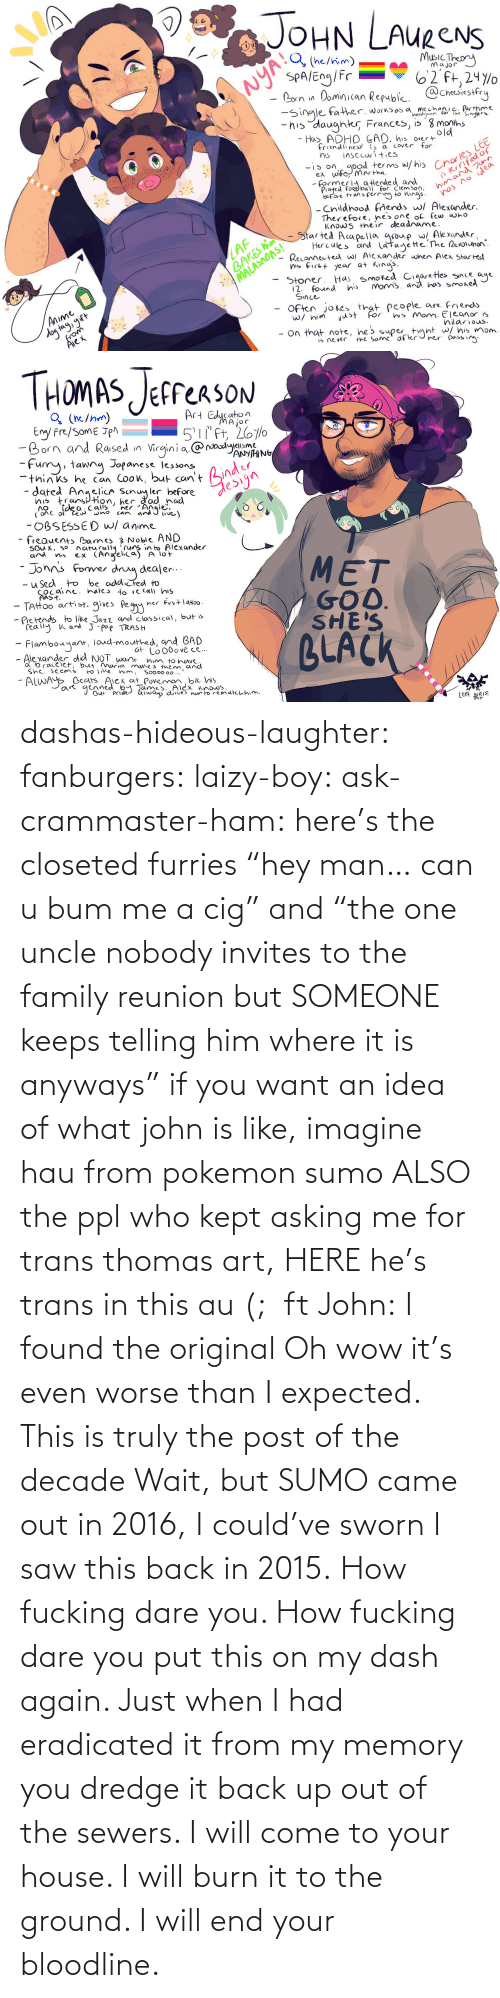 "Saw: dashas-hideous-laughter:  fanburgers:   laizy-boy:   ask-crammaster-ham:   here's the closeted furries ""hey man… can u bum me a cig"" and ""the one uncle nobody invites to the family reunion but SOMEONE keeps telling him where it is anyways""   if you want an idea of what john is like, imagine hau from pokemon sumo ALSO the ppl who kept asking me for trans thomas art, HERE he's trans in this au (;  ft John:    I found the original     Oh wow it's even worse than I expected. This is truly the post of the decade    Wait, but SUMO came out in 2016, I could've sworn I saw this back in 2015.    How fucking dare you. How fucking dare you put this on my dash again. Just when I had eradicated it from my memory you dredge it back up out of the sewers. I will come to your house. I will burn it to the ground. I will end your bloodline."